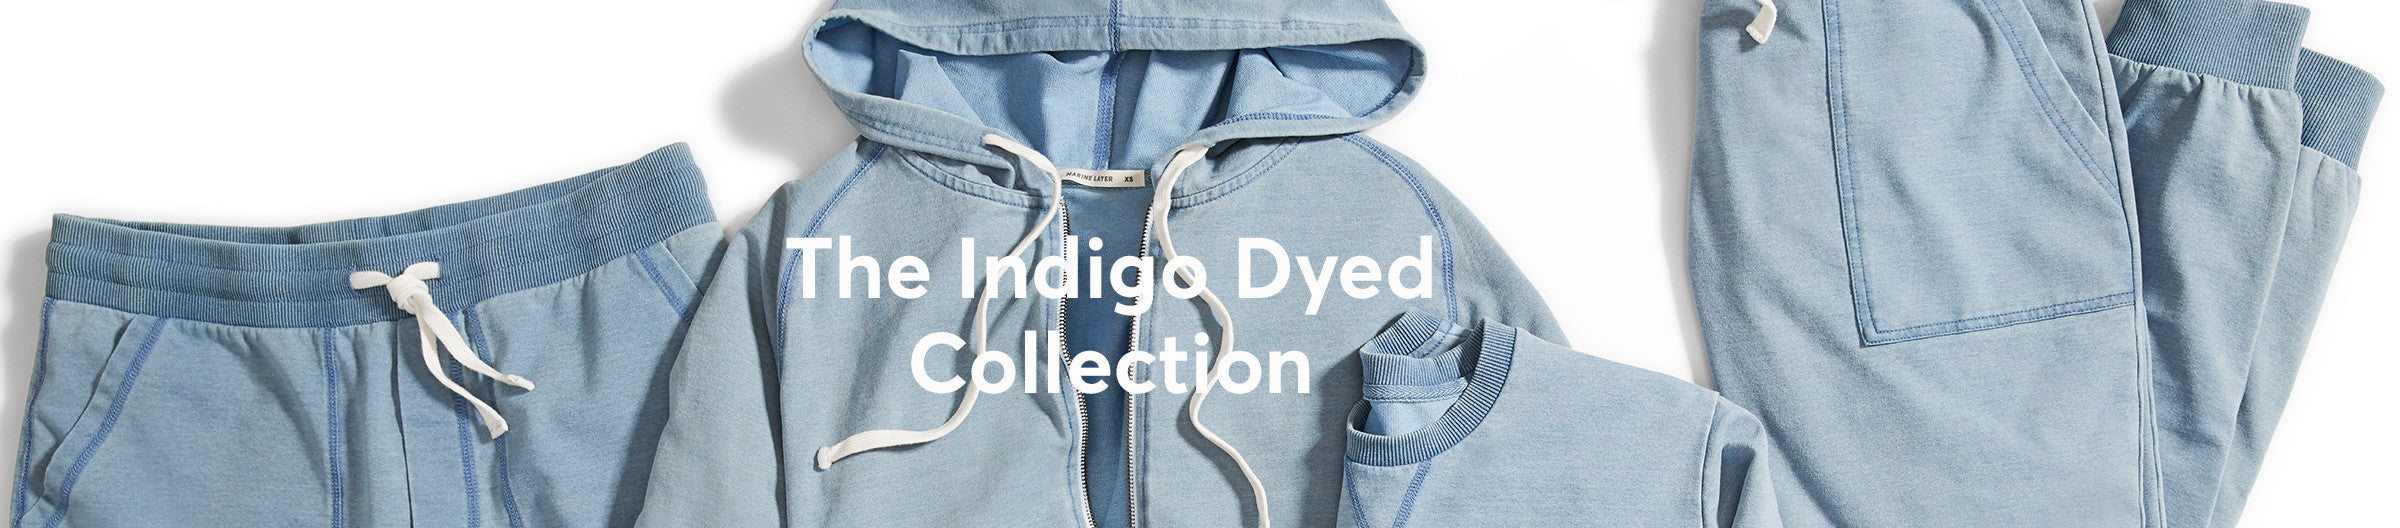 The Indigo Dyed Collection